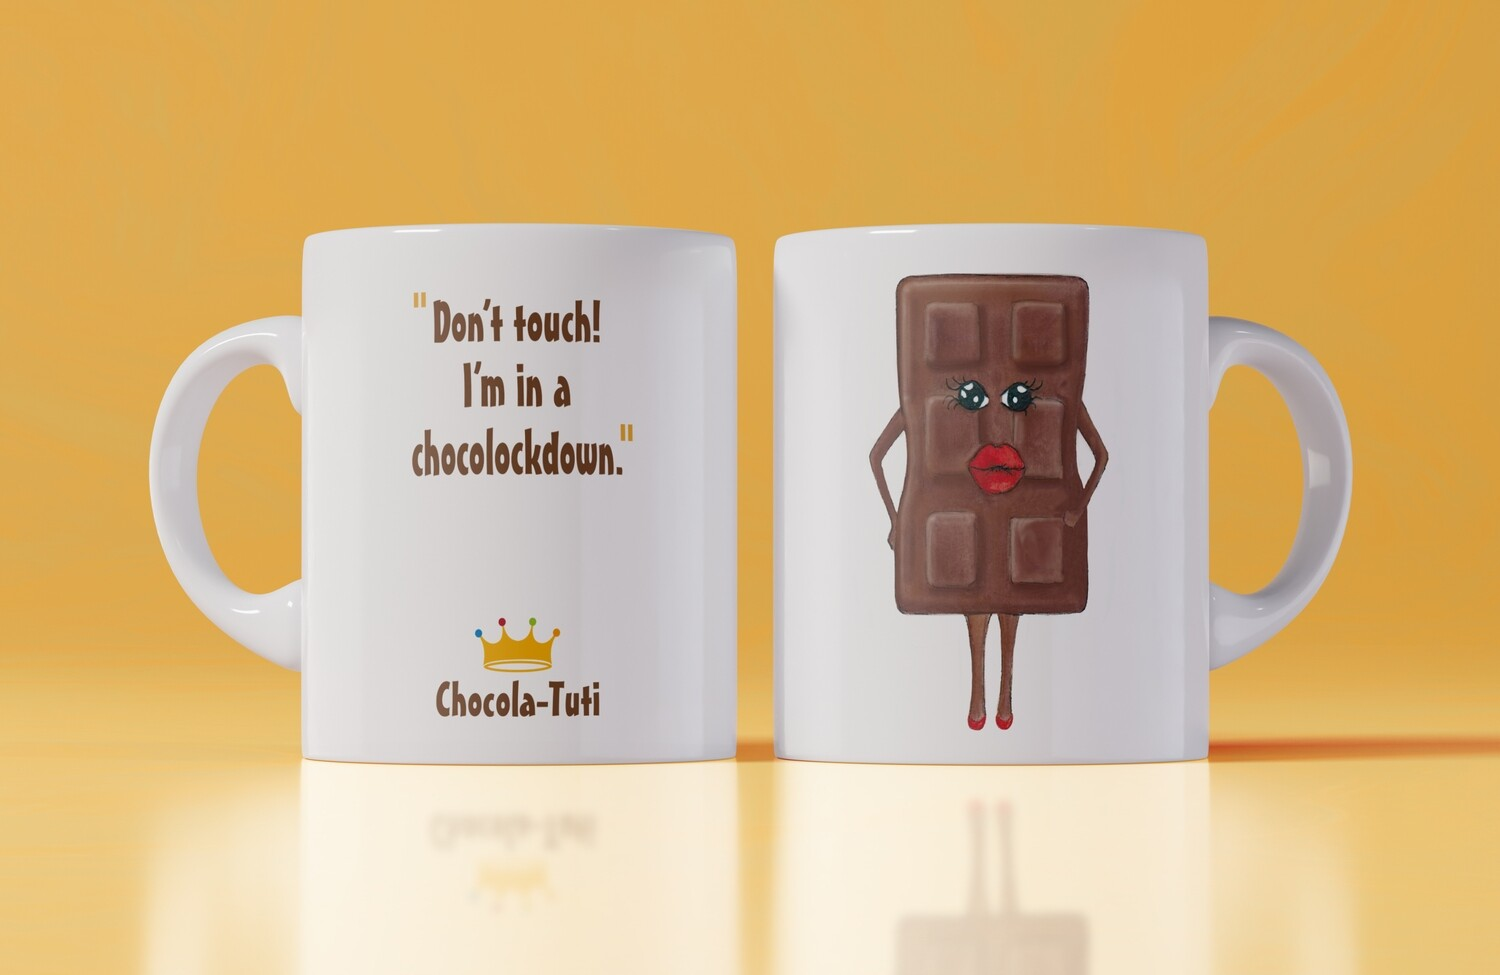 Koffiemok 'Don't touch!  I'm in a chocolockdown